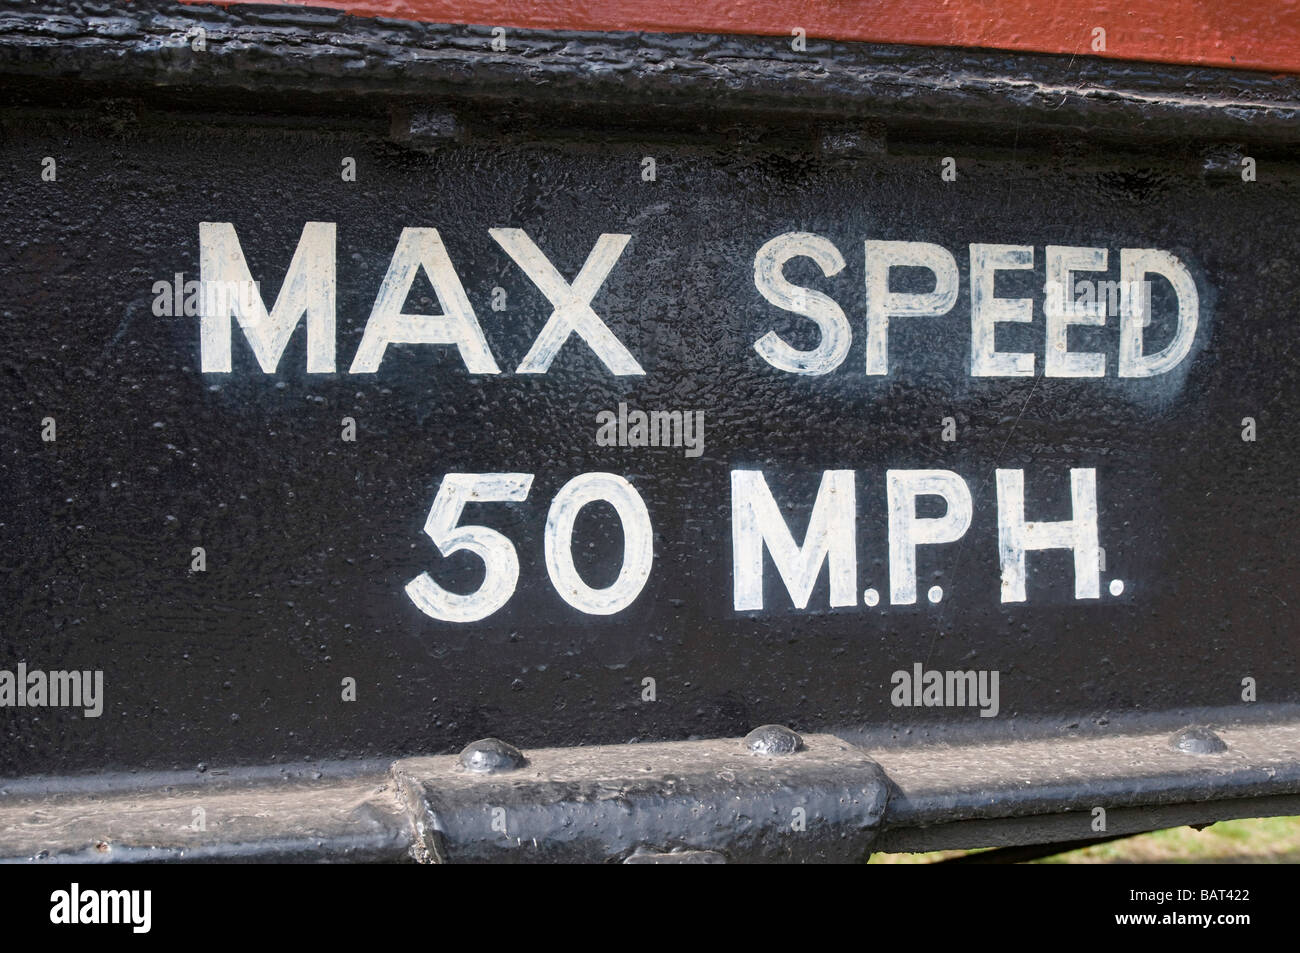 Sign on side of train advising safety advice max speed 50 MPH Stock Photo